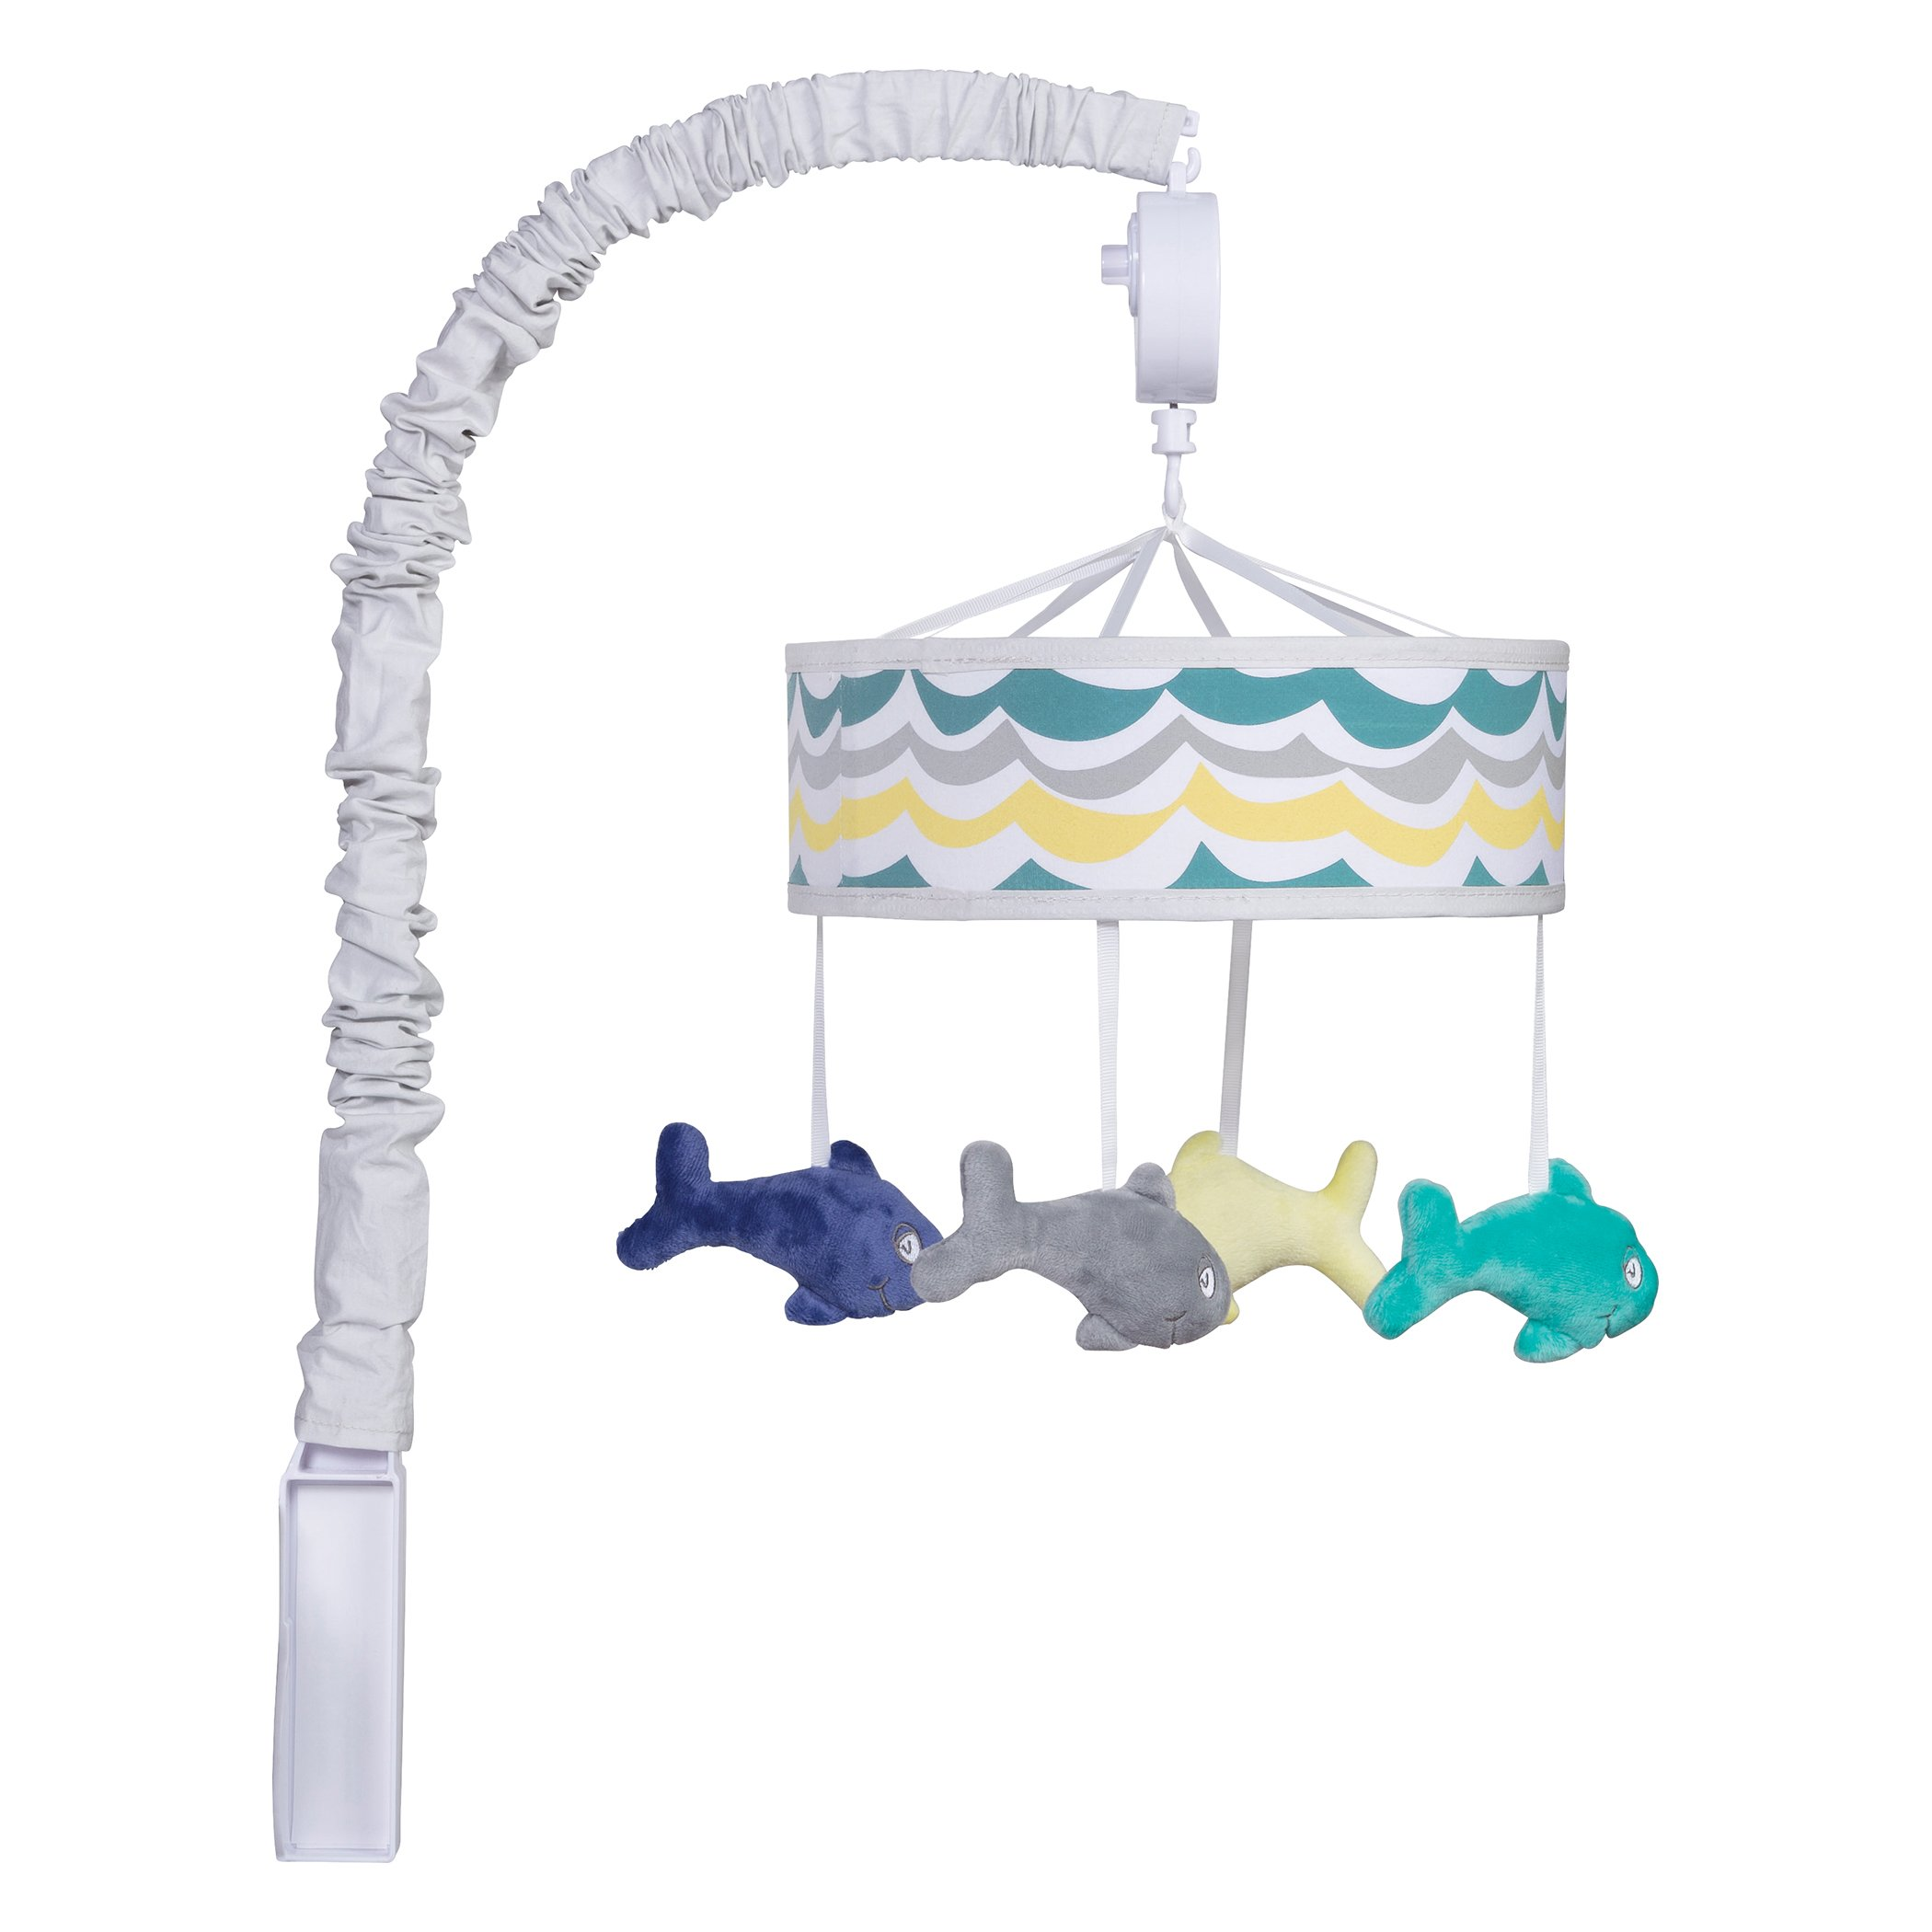 Trend Lab Dr. Seuss New Fish Musical Mobile, Gray/Teal/Blue/Yellow